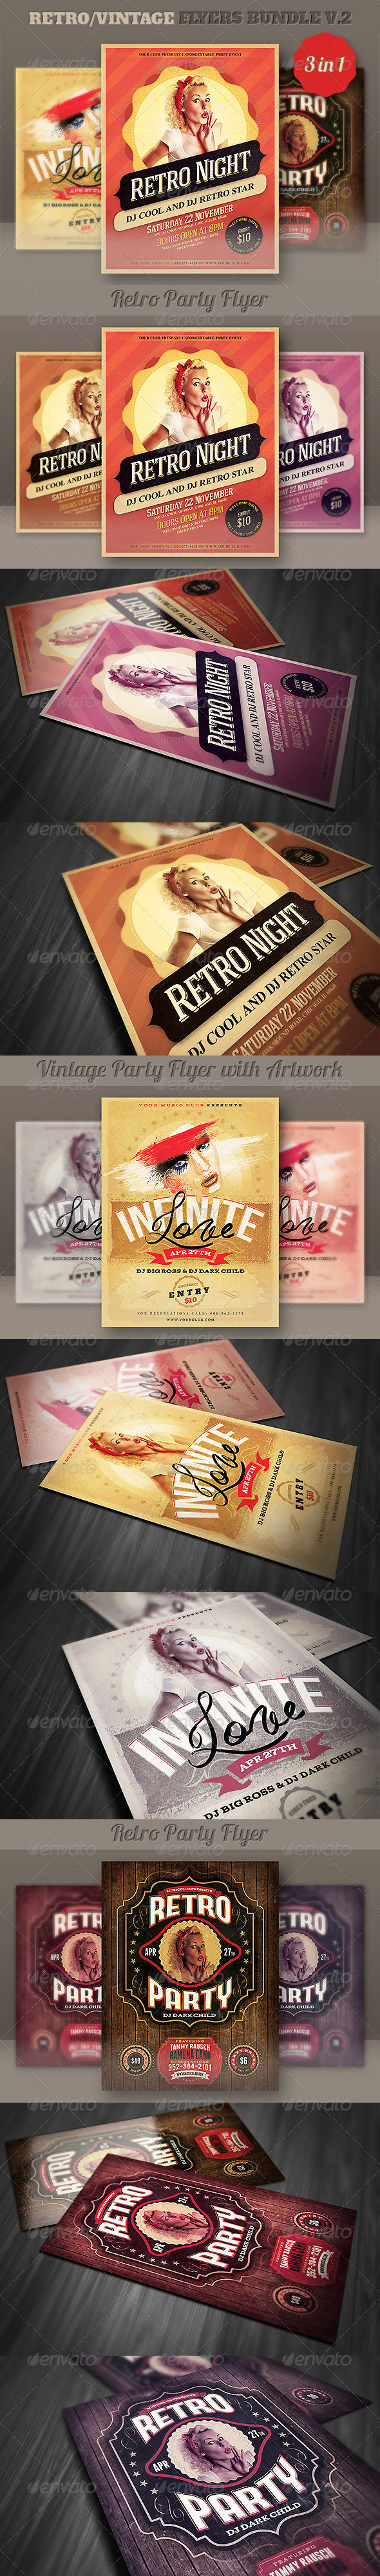 GraphicRiver Retro Flyers Bundle v.2 5388857